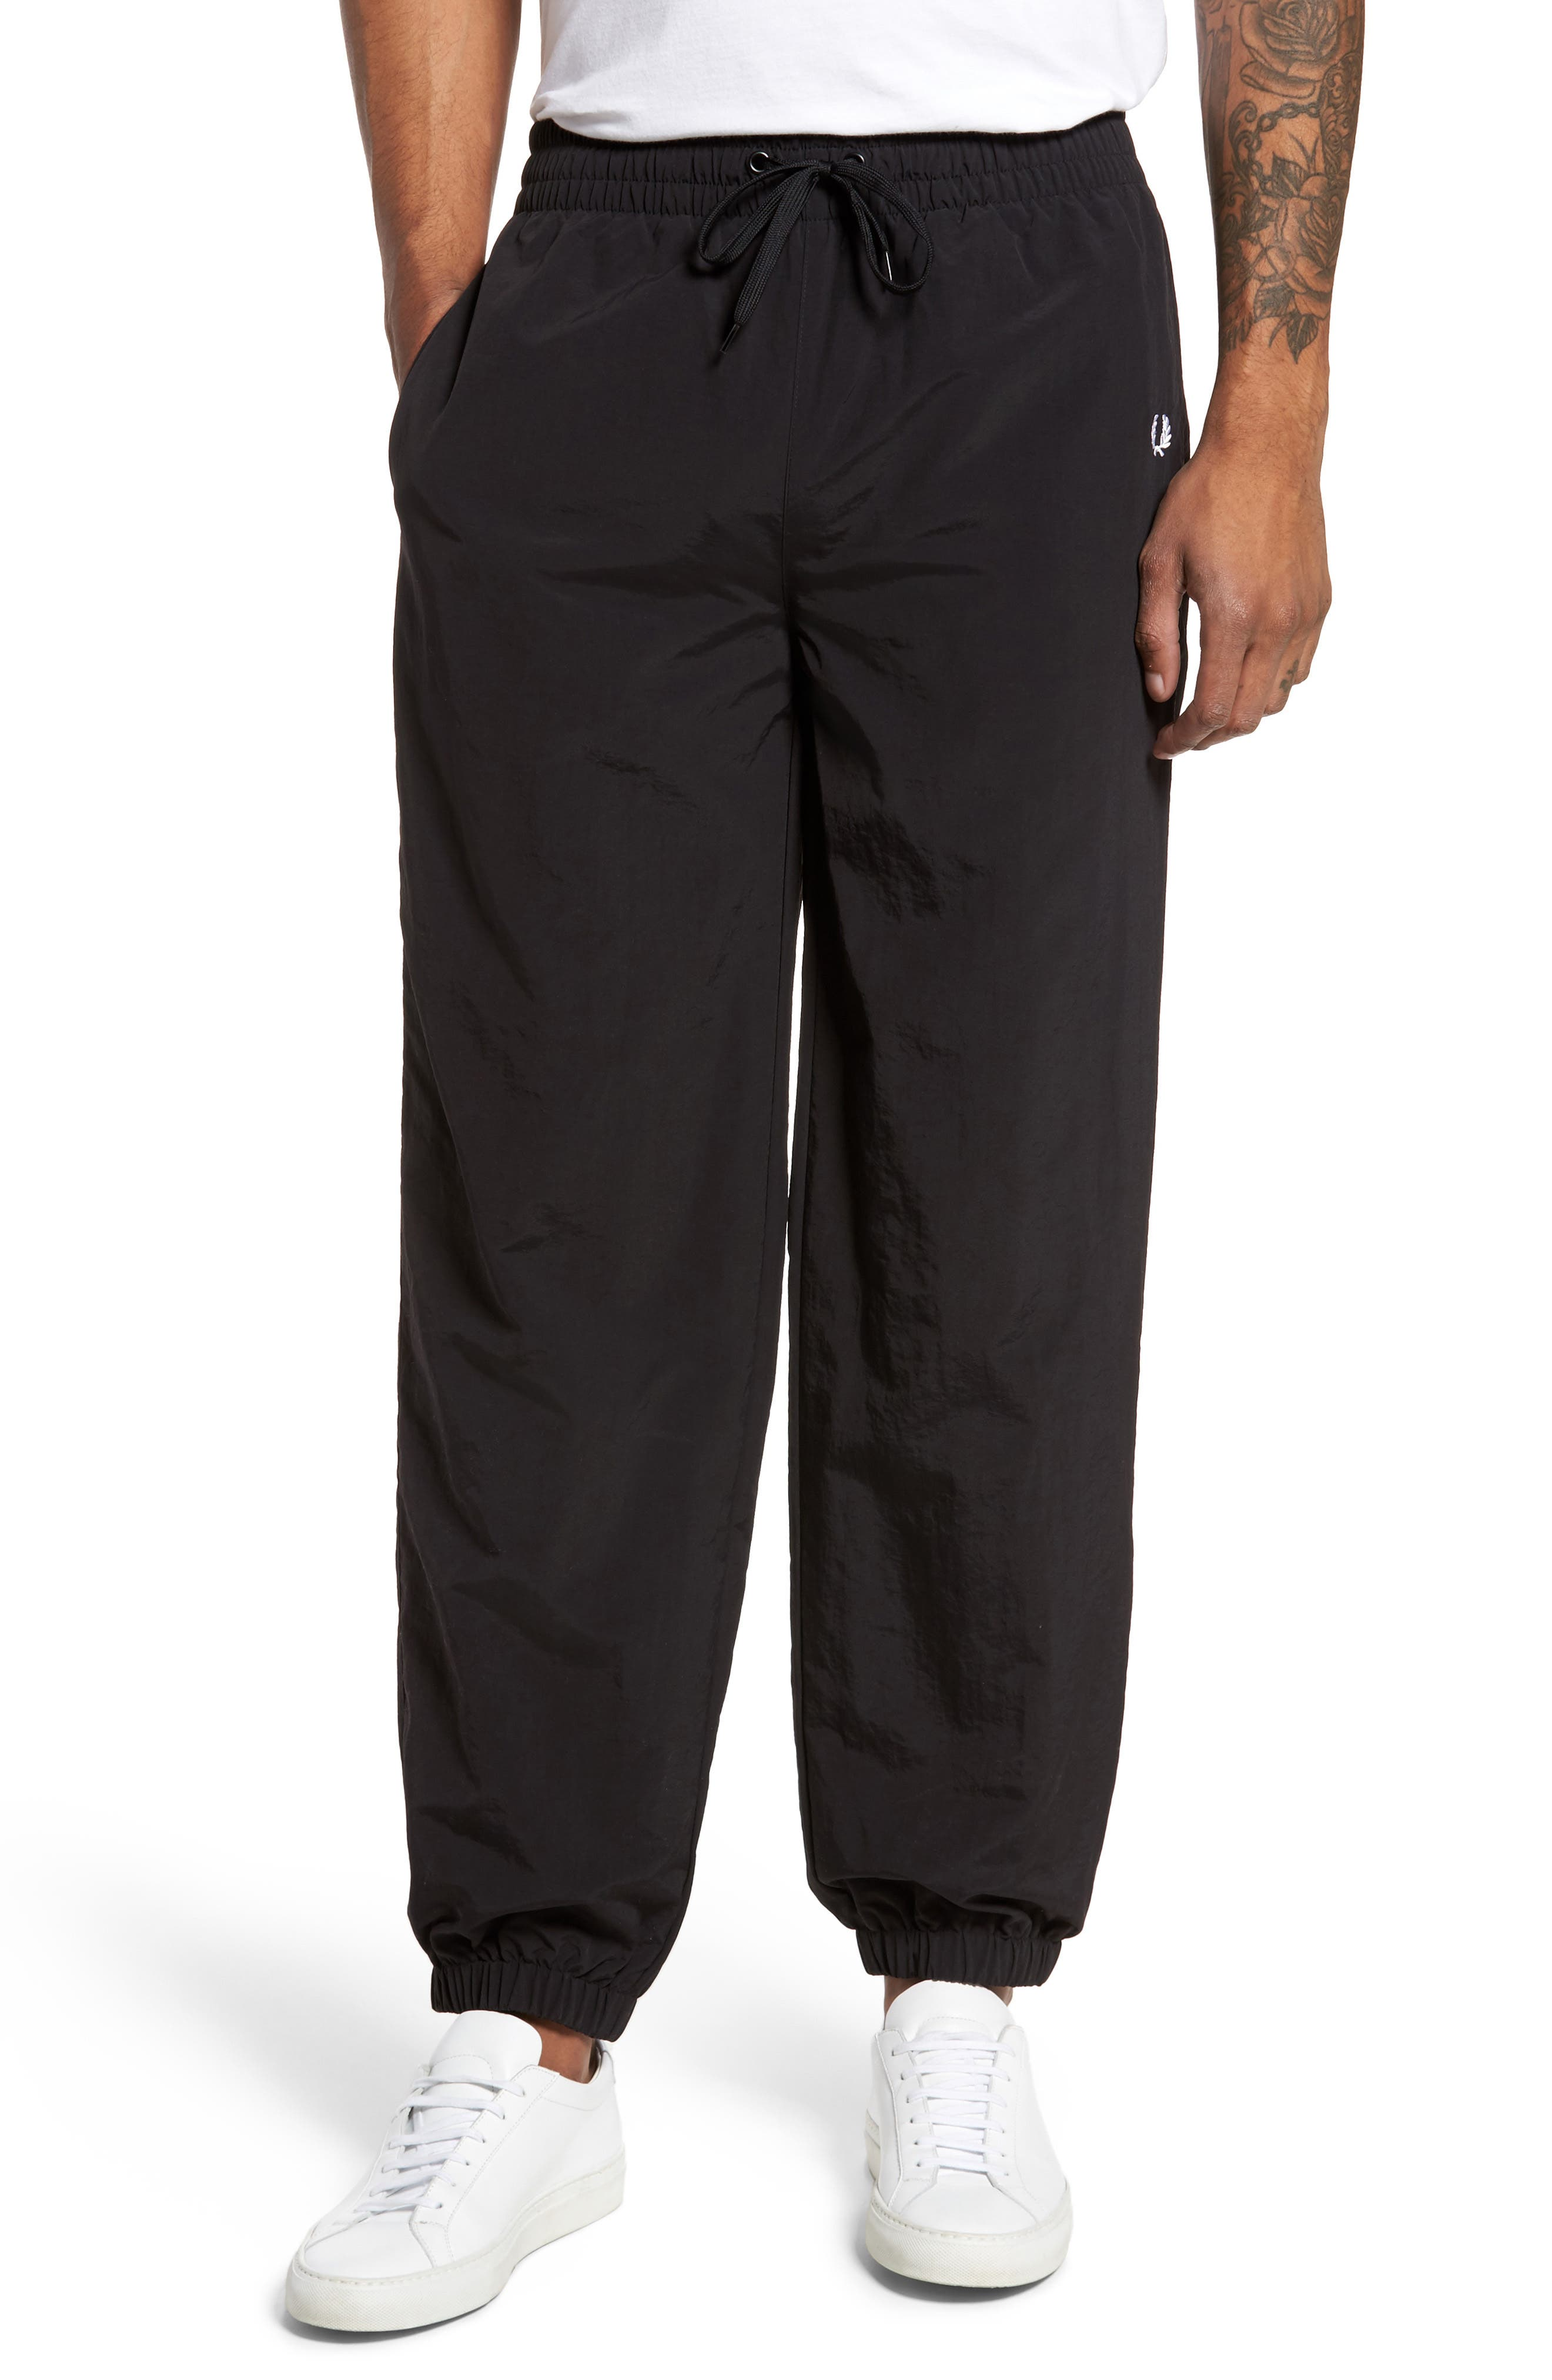 Alternate Image 1 Selected - Fred Perry Monochrome Tennis Pants